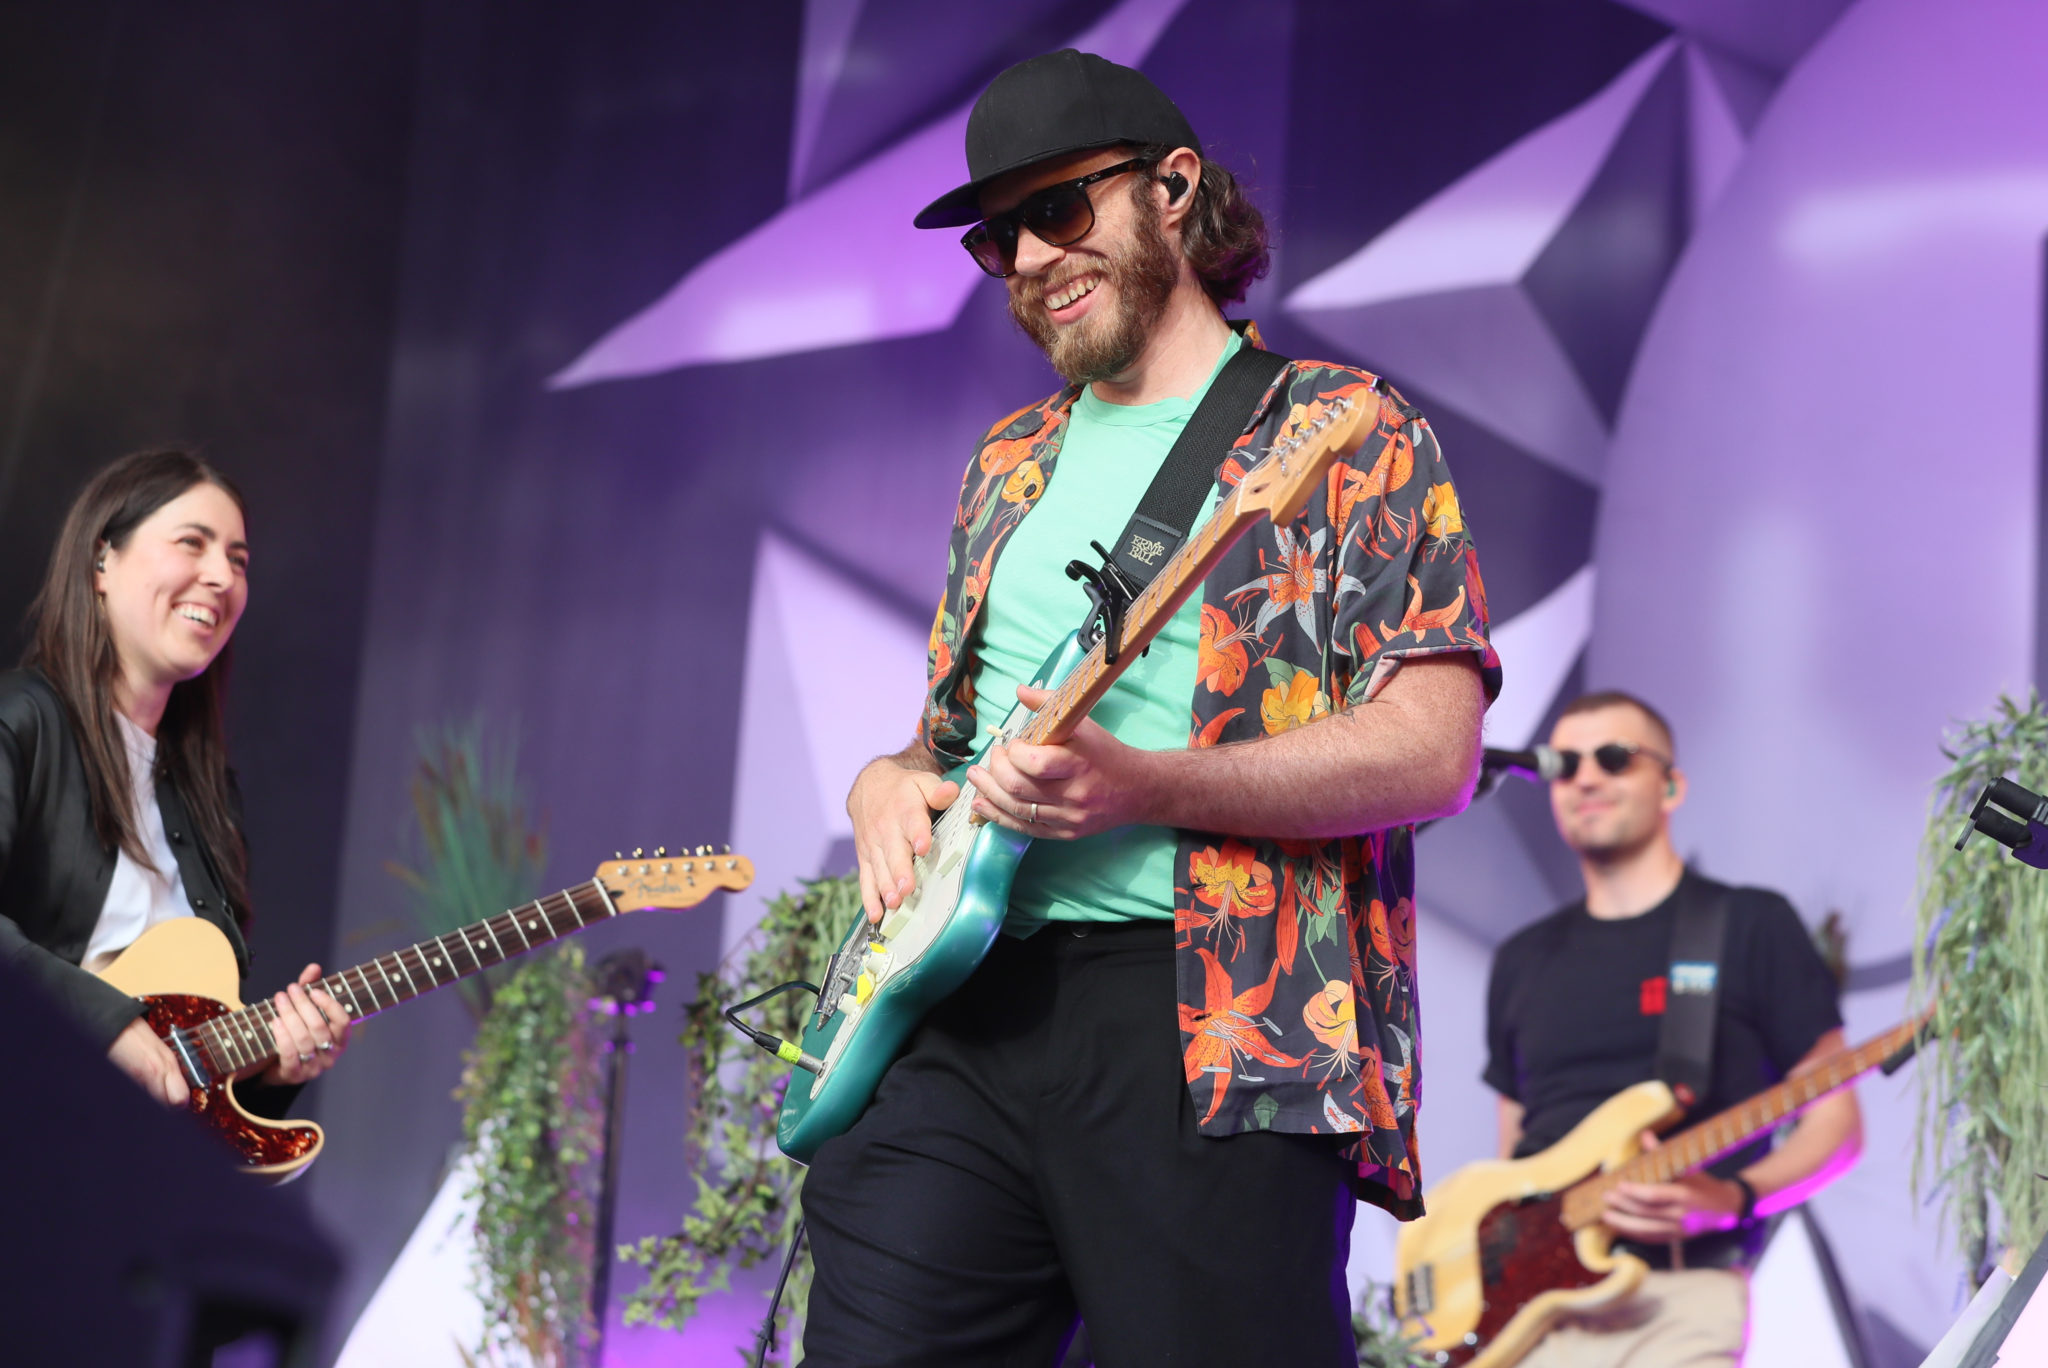 James Vincent McMorrow on stage during Ireland's first major live gig since the pandemic